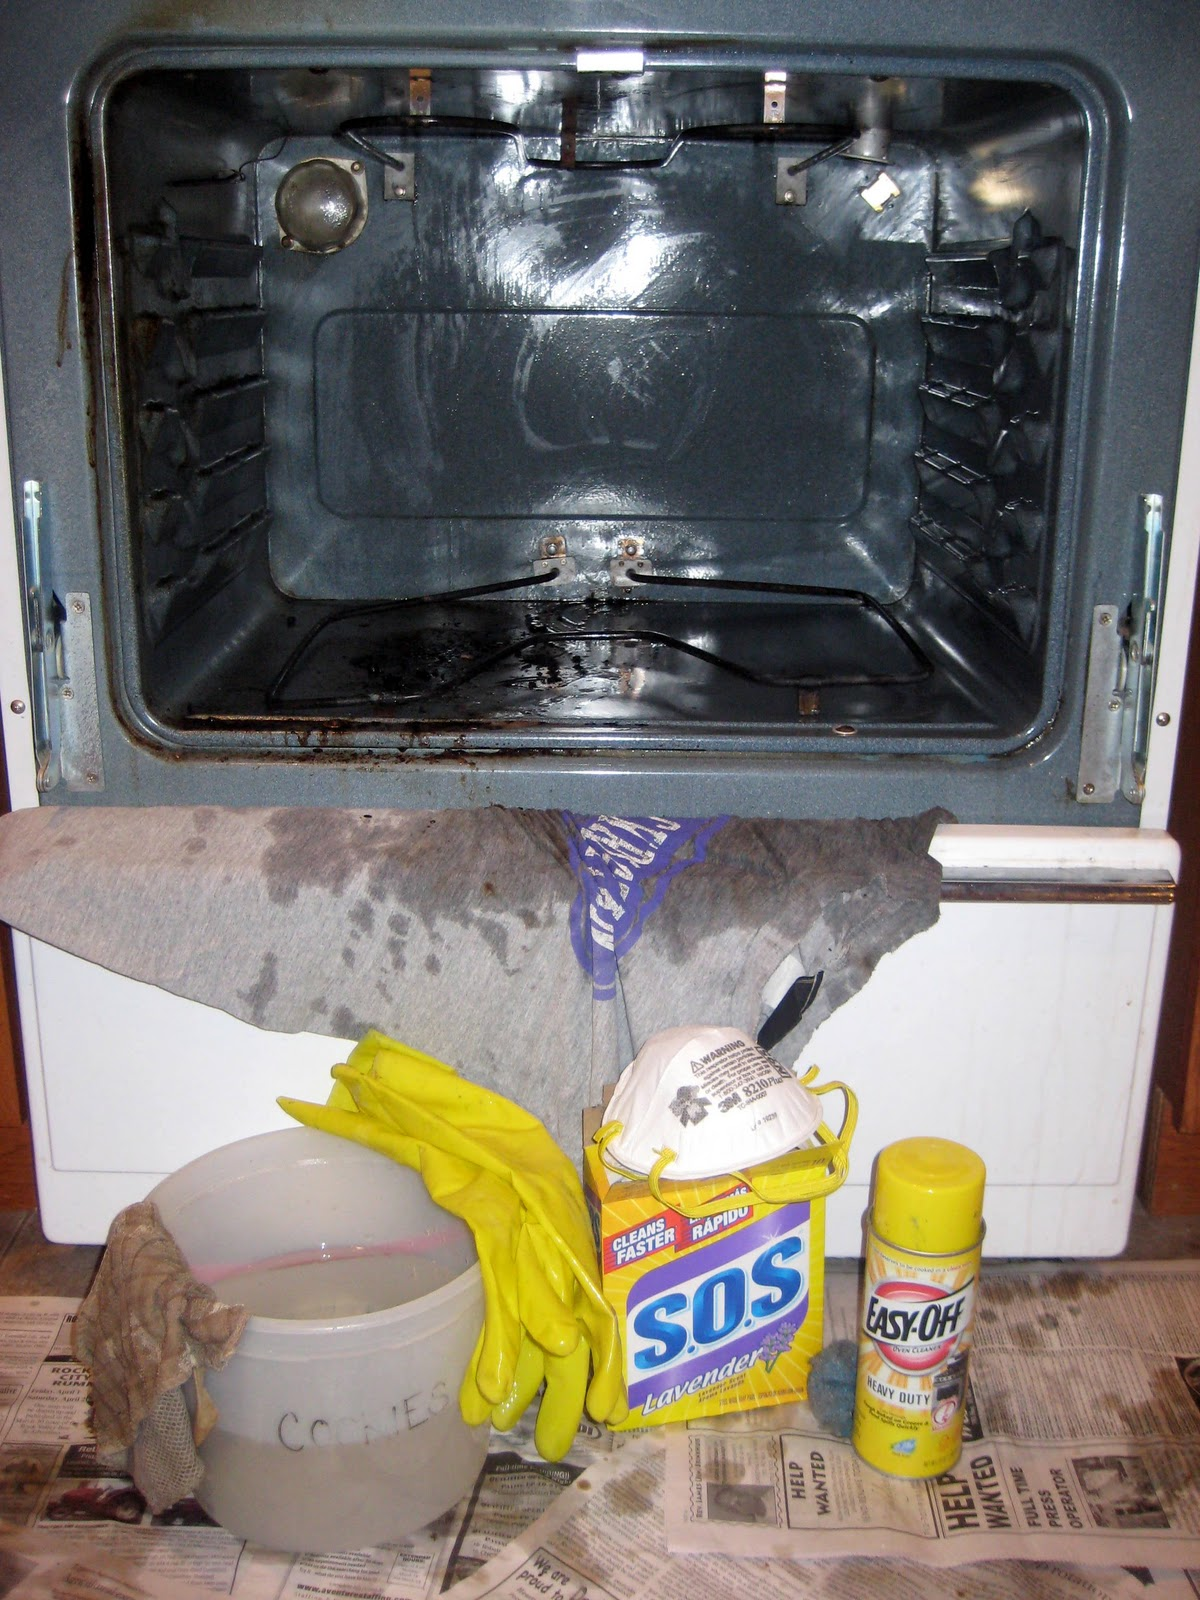 Cobo 8 tips for cleaning your oven - Cookers and ovens cleaning tips ...